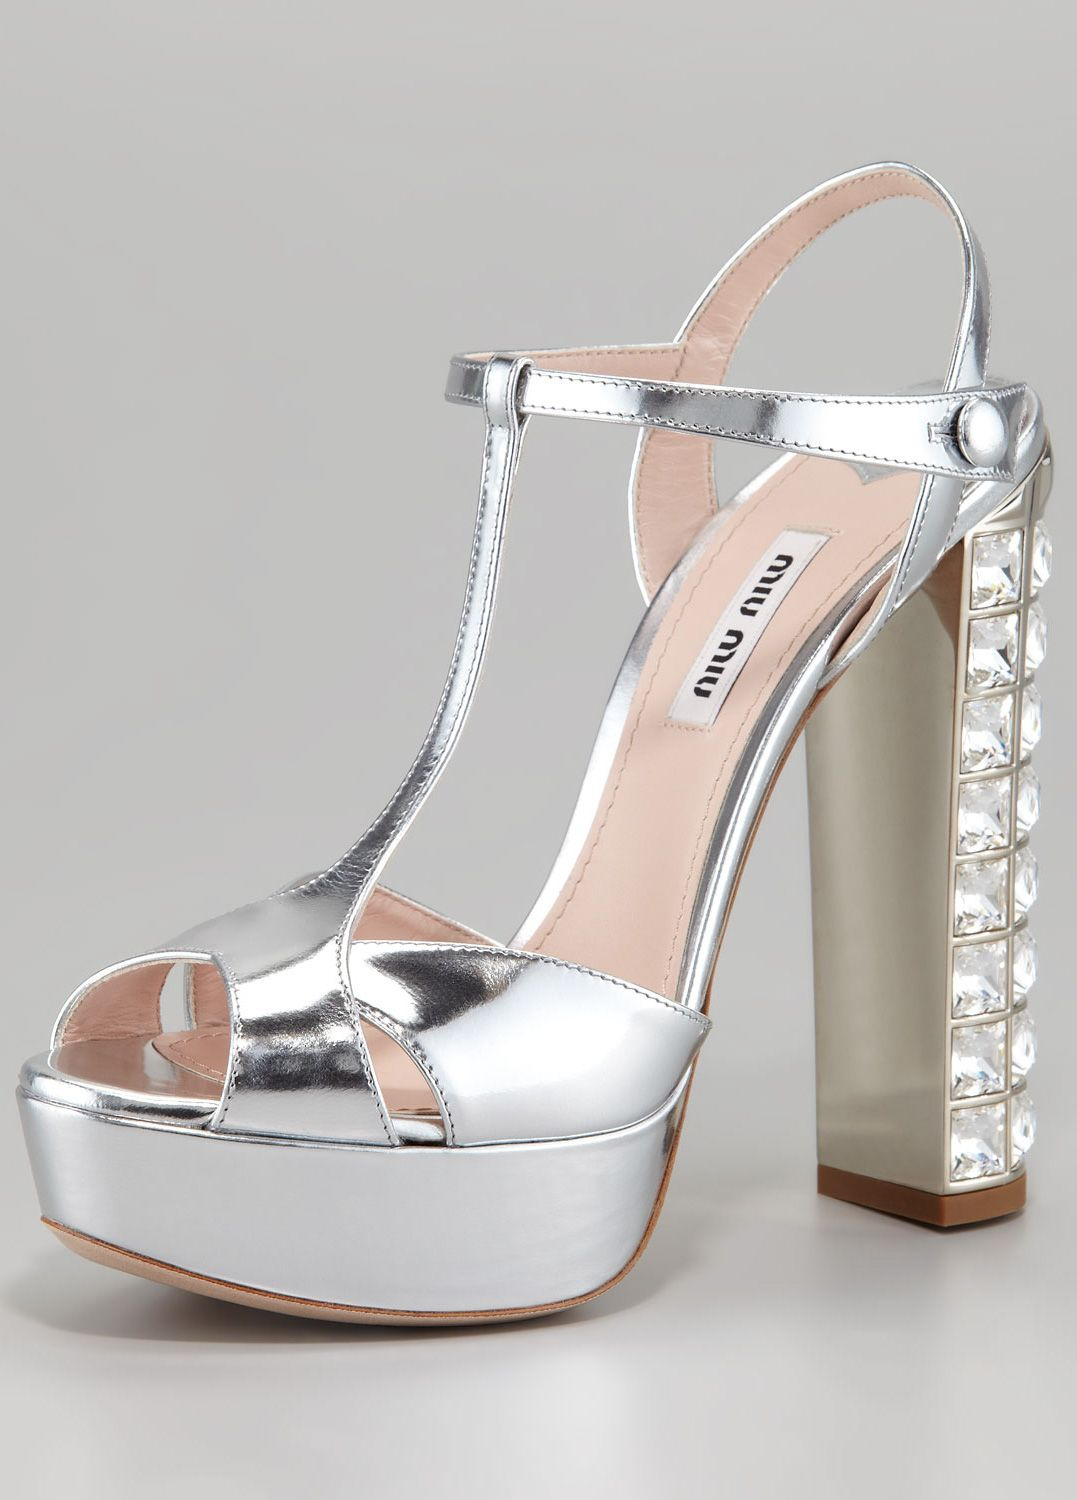 Miu Miujewelled heel sandals